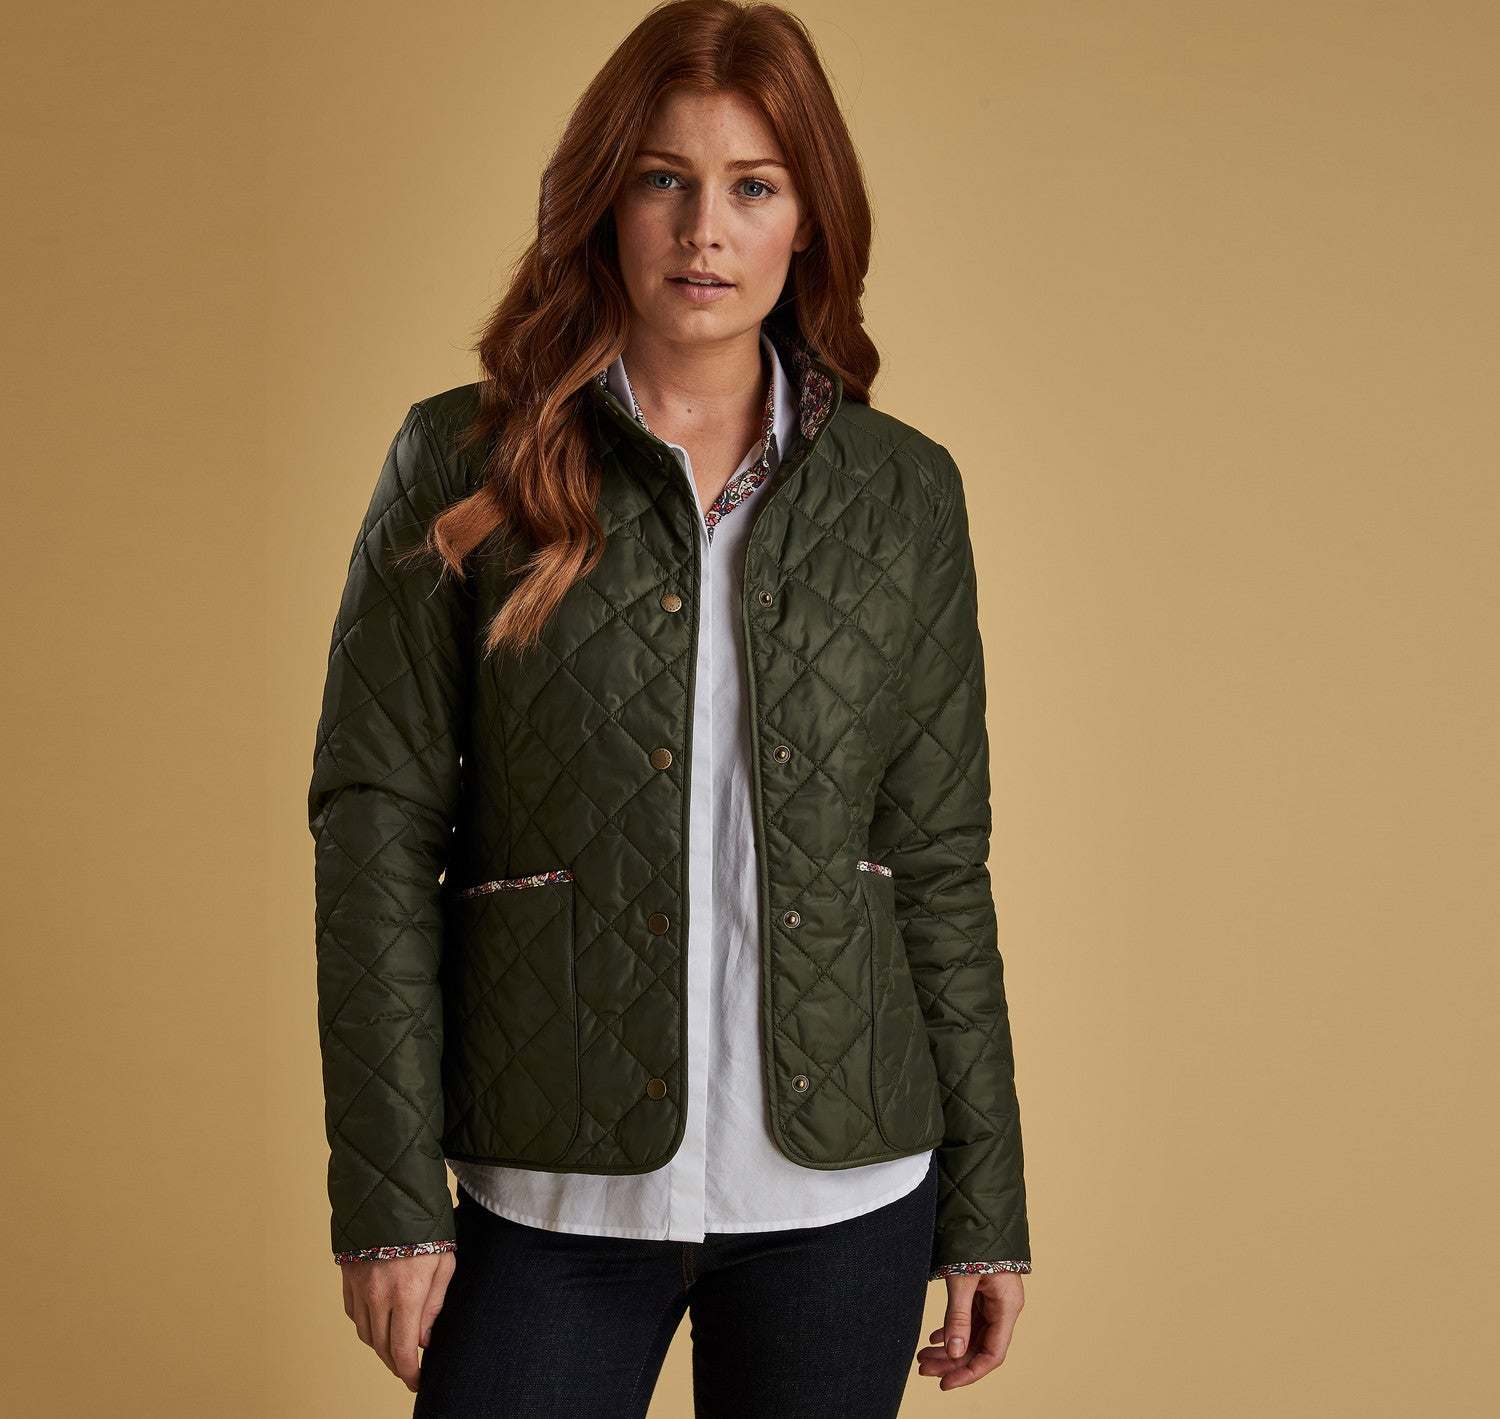 Barbour Evelyn Quilt for Ladies in Olive / Morris Butterfly Print